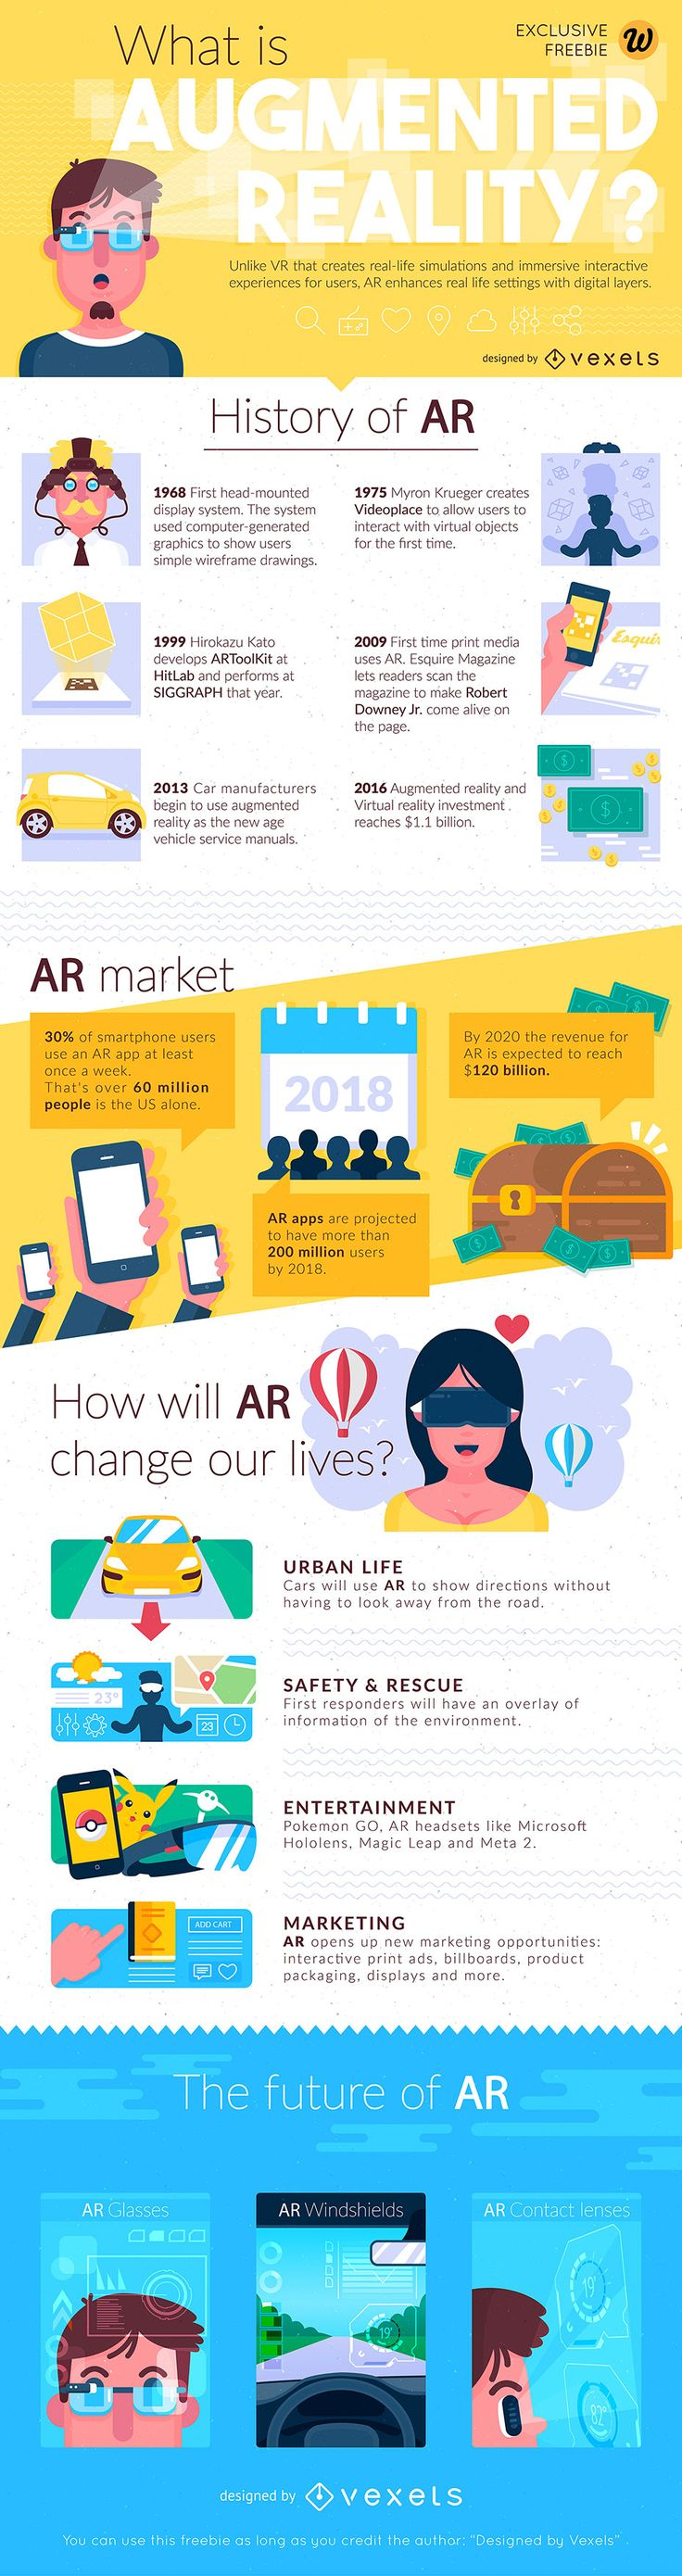 To know more visit www.extentia.com #Infographic #VirtualReality #Technology